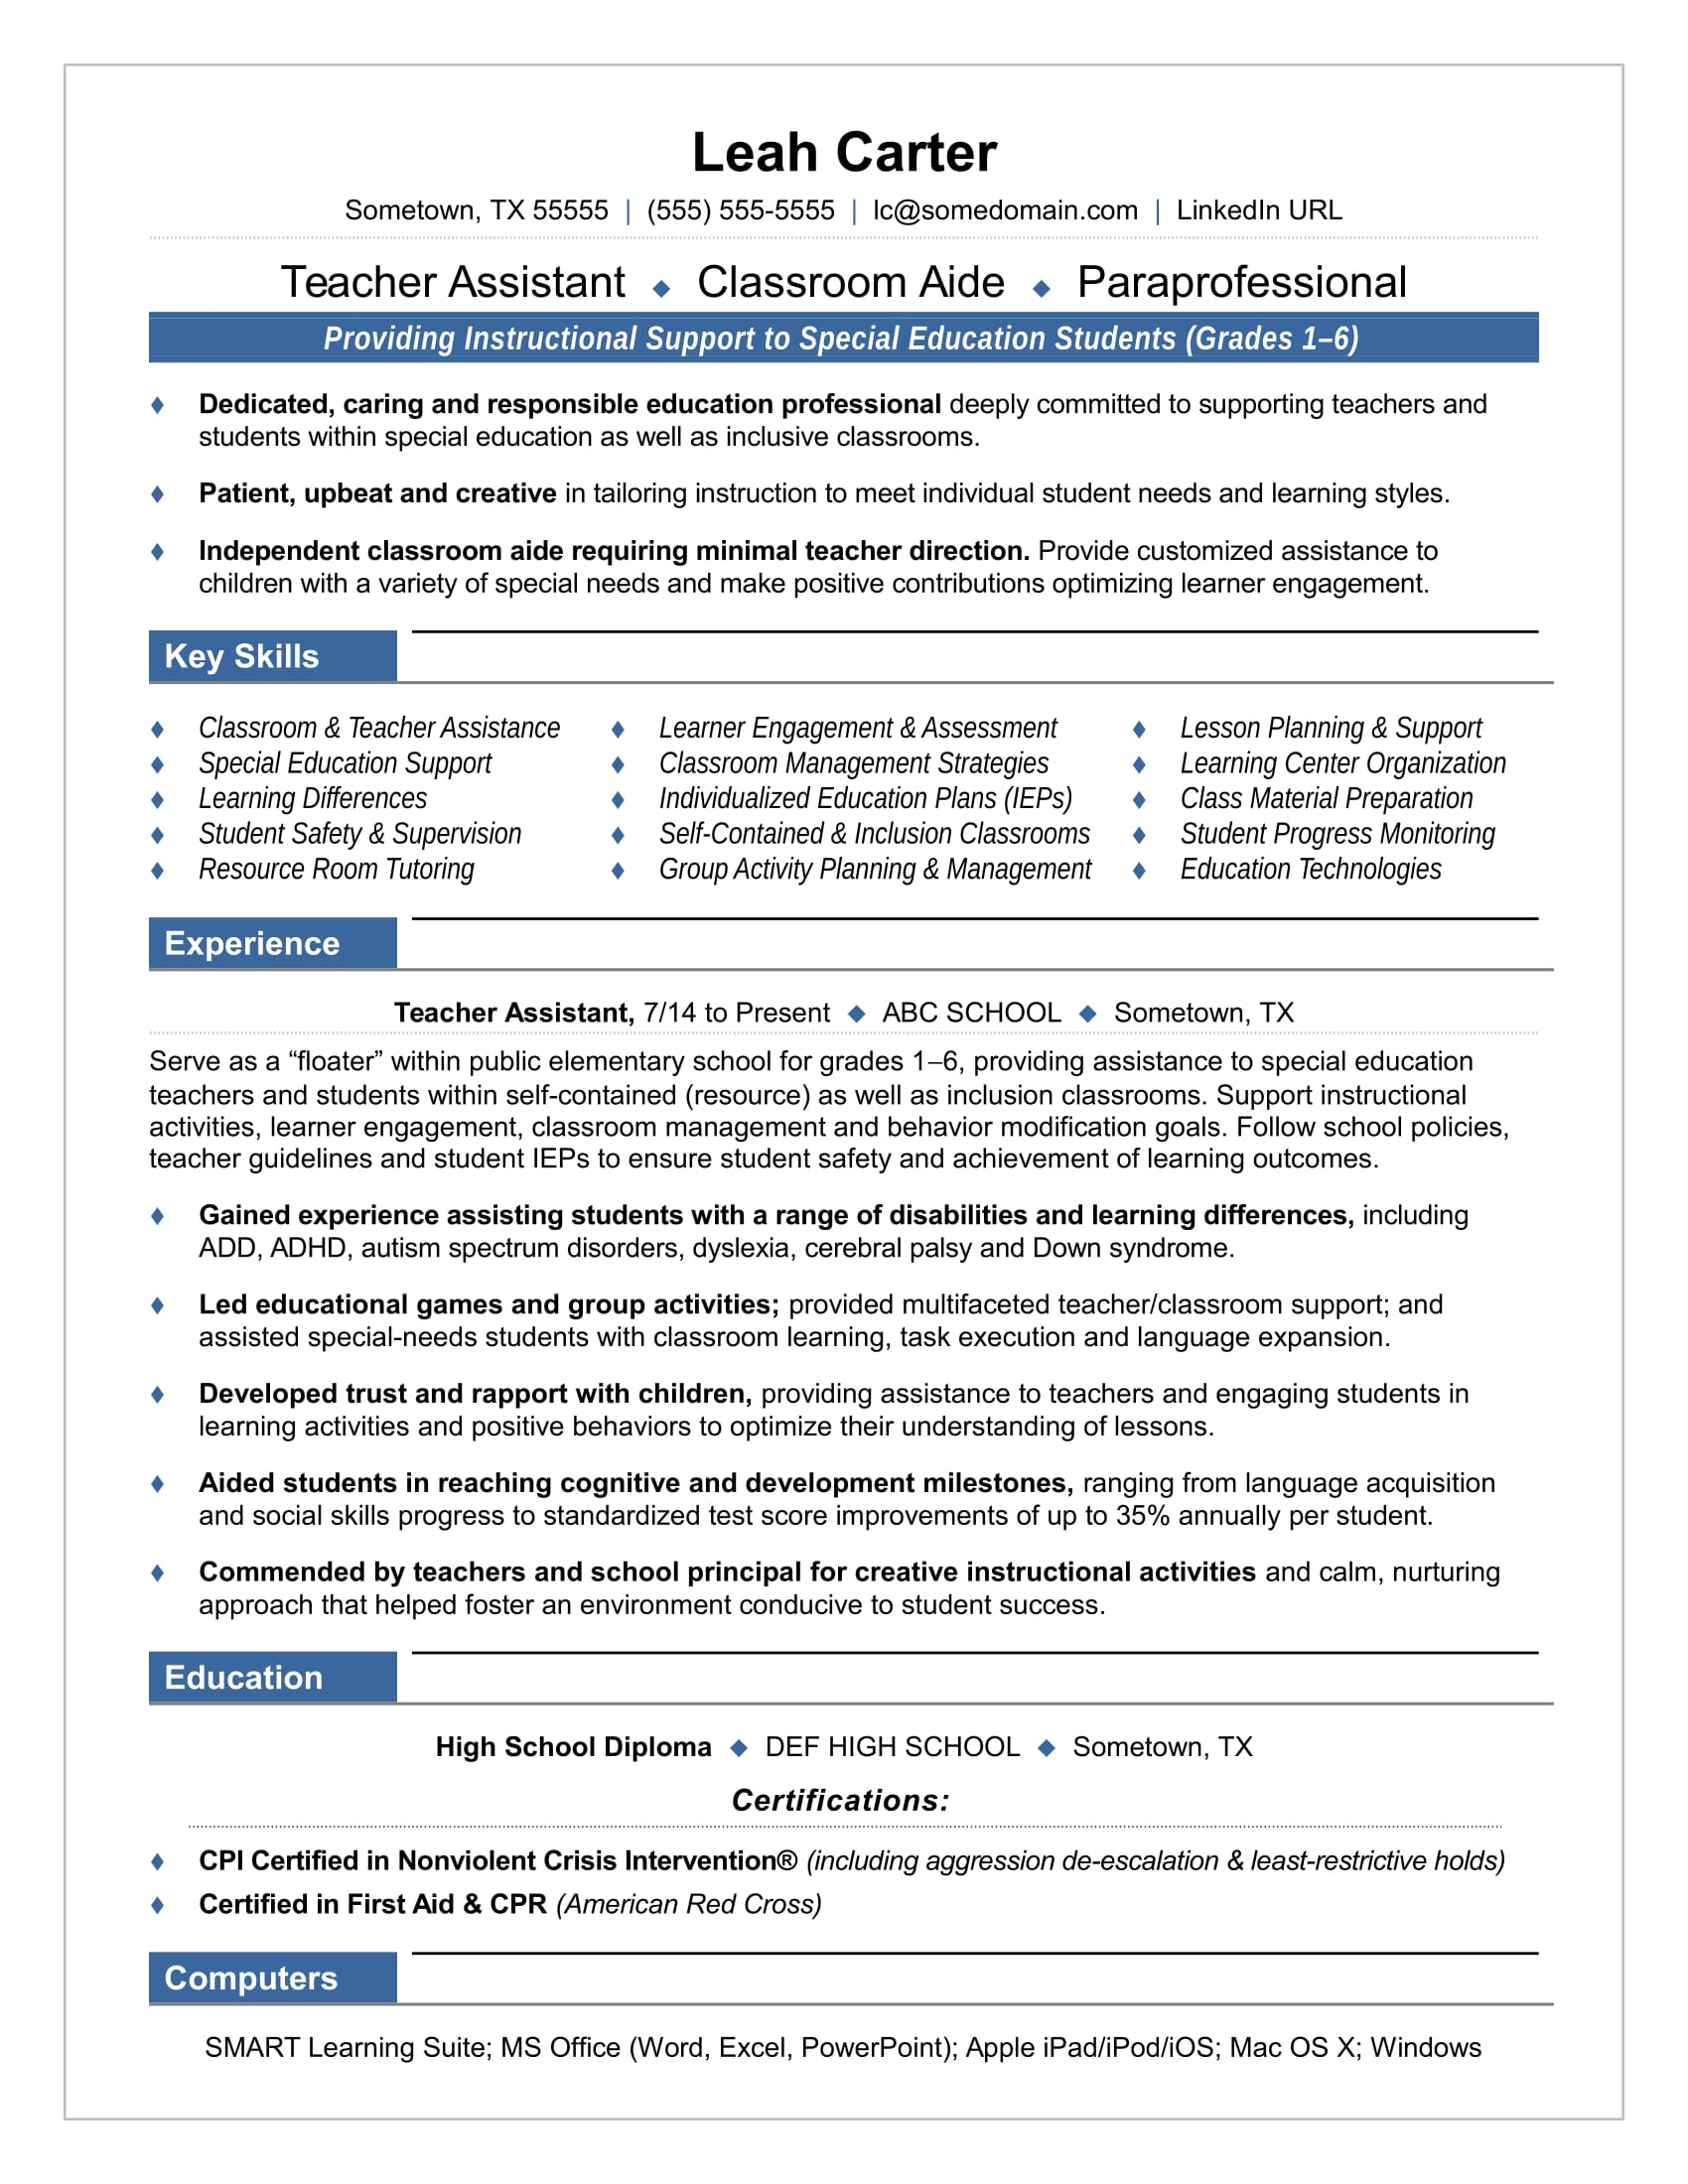 teacher assistant resume sample monster education or experience first on teacherassistant Resume Education Or Experience First On Resume